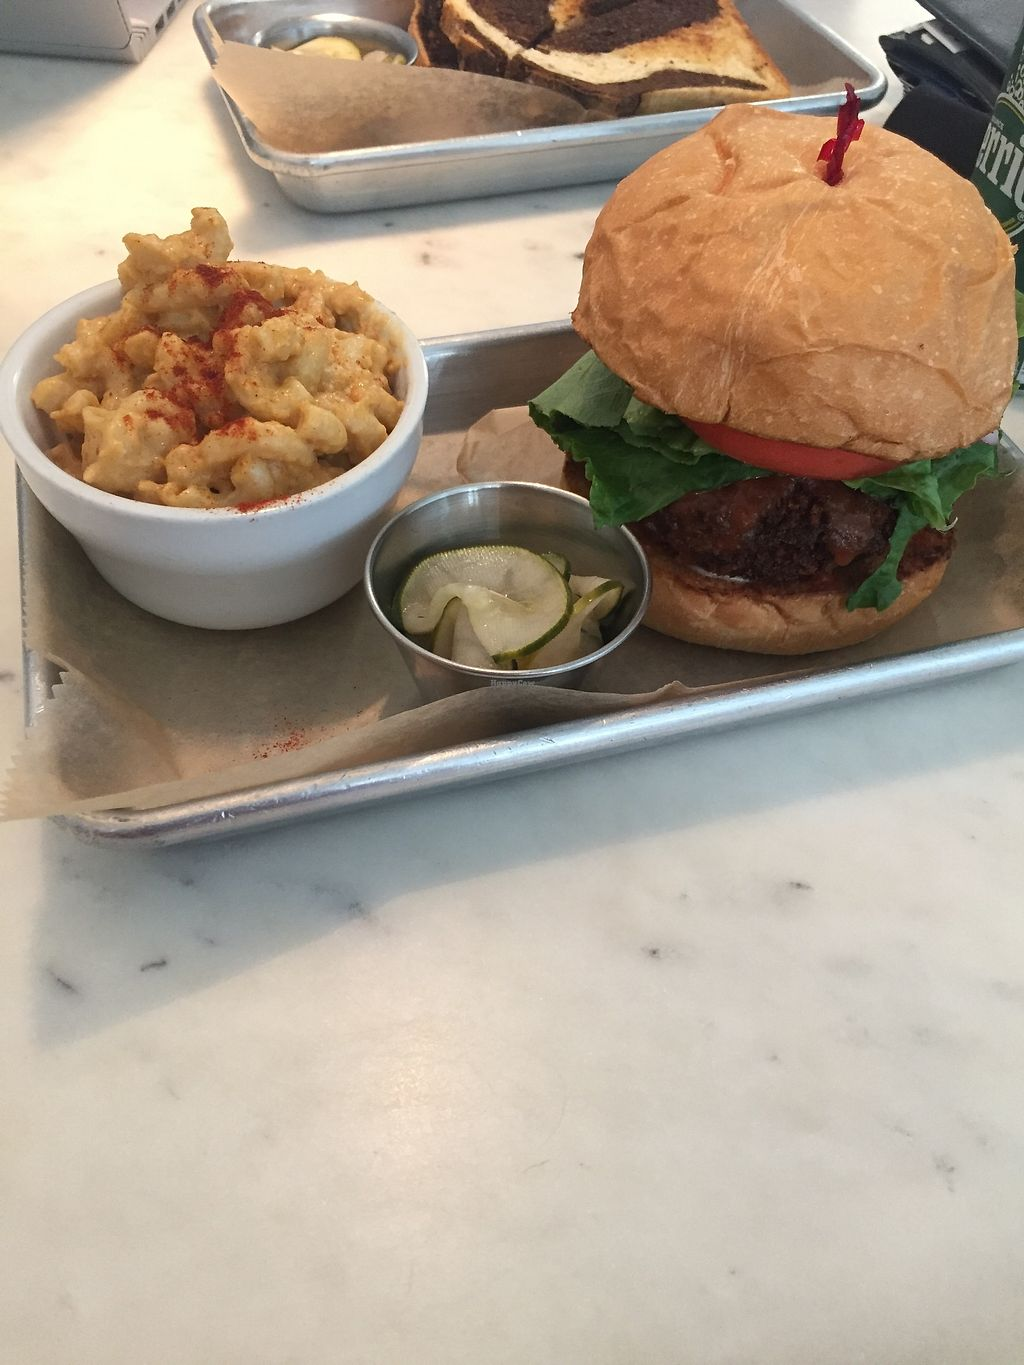 "Photo of Gnome Cafe  by <a href=""/members/profile/KaitlynnGill"">KaitlynnGill</a> <br/>Fried seitan and Mac  <br/> July 31, 2017  - <a href='/contact/abuse/image/66249/287323'>Report</a>"